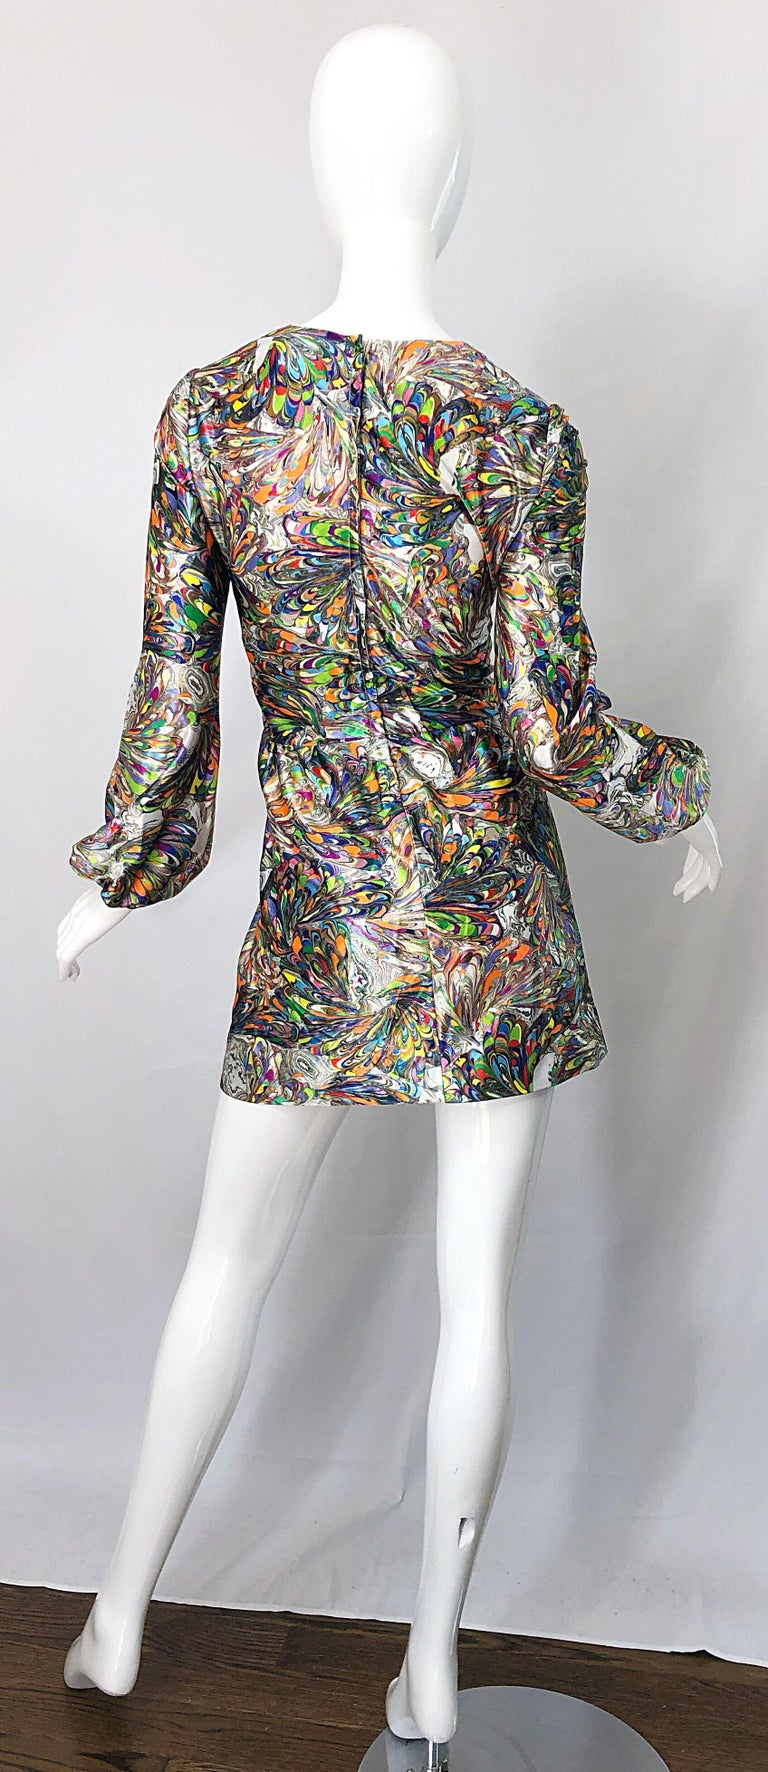 1970s Mosaic Swirl Vibrant Colored Bishop Sleeve Vintage 70s Tunic Dress In Excellent Condition For Sale In Chicago, IL